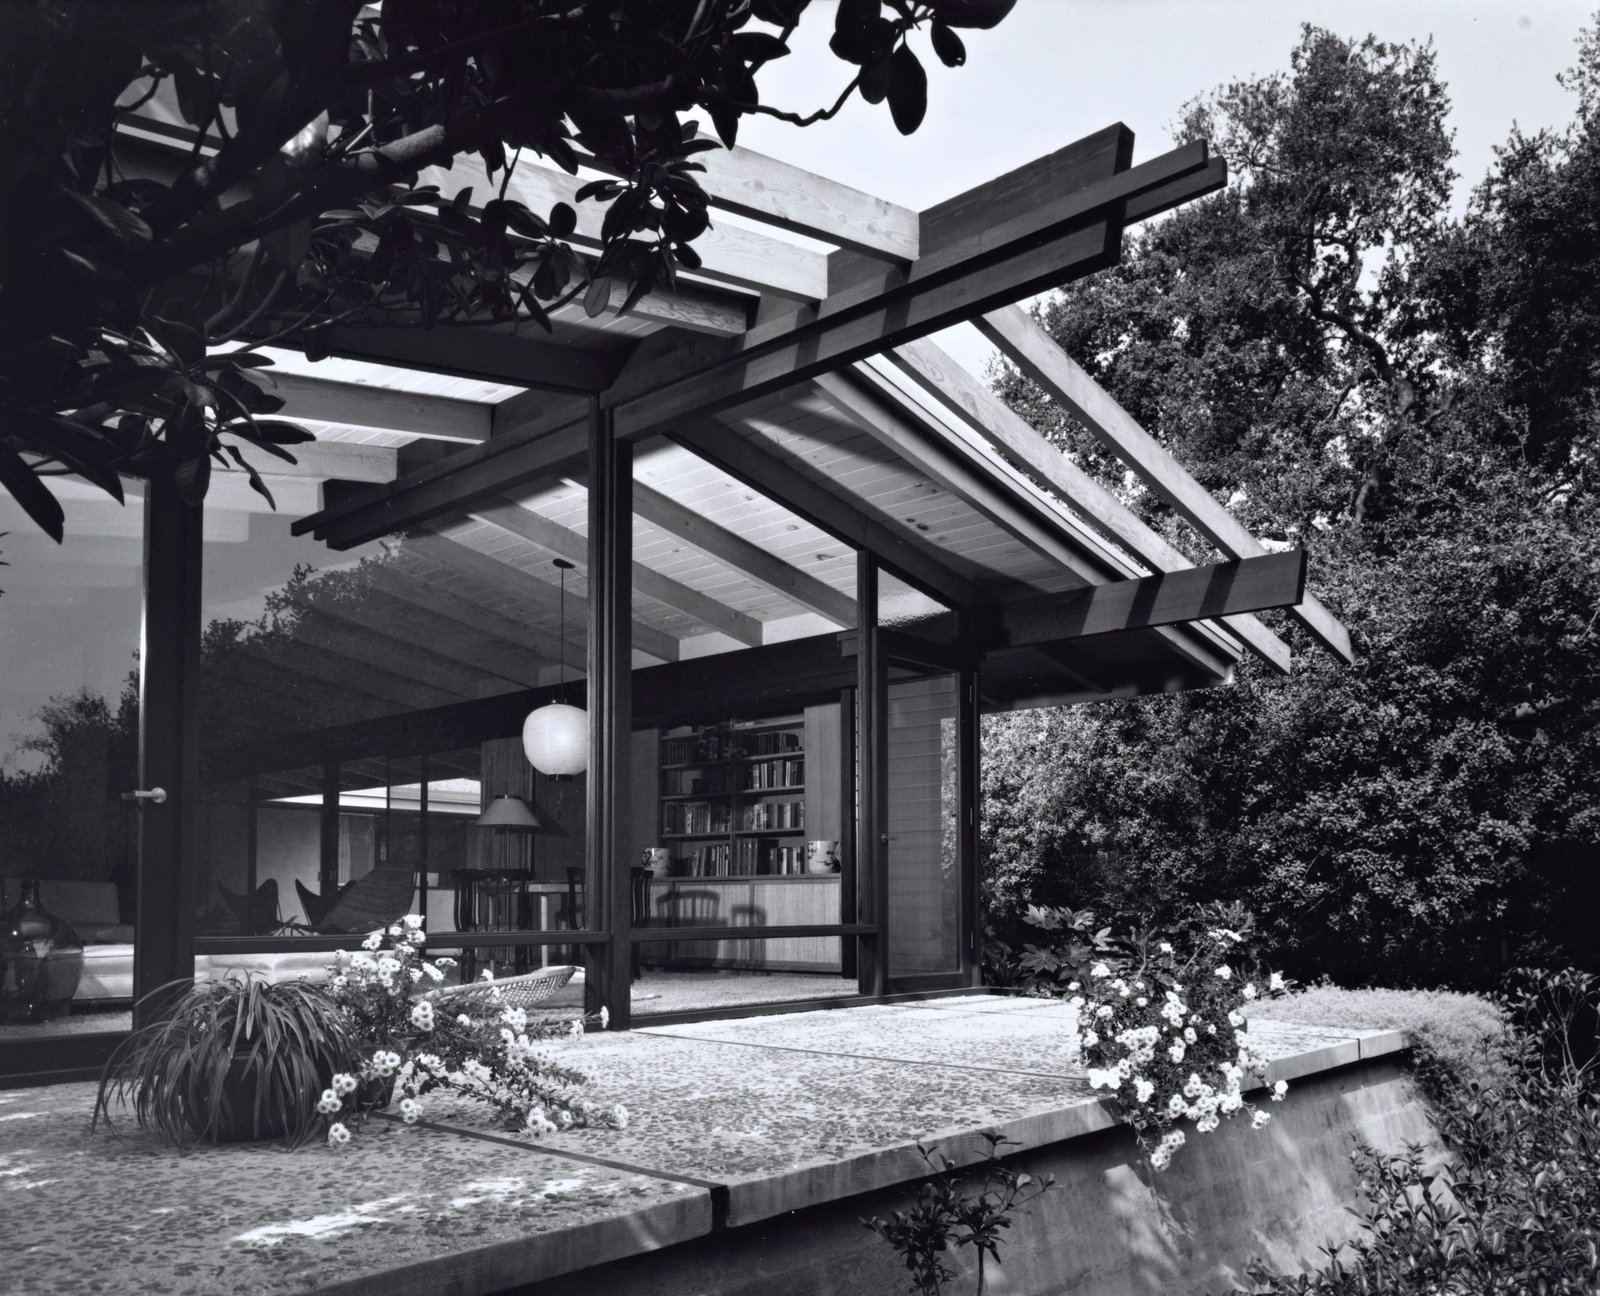 The architects maintained the midcentury post-and-beam construction and Japanese-inspired details of the original building, while brightening and expanding the interior living spaces.  Photo 11 of 14 in Creative Revival of a Modernist Gem